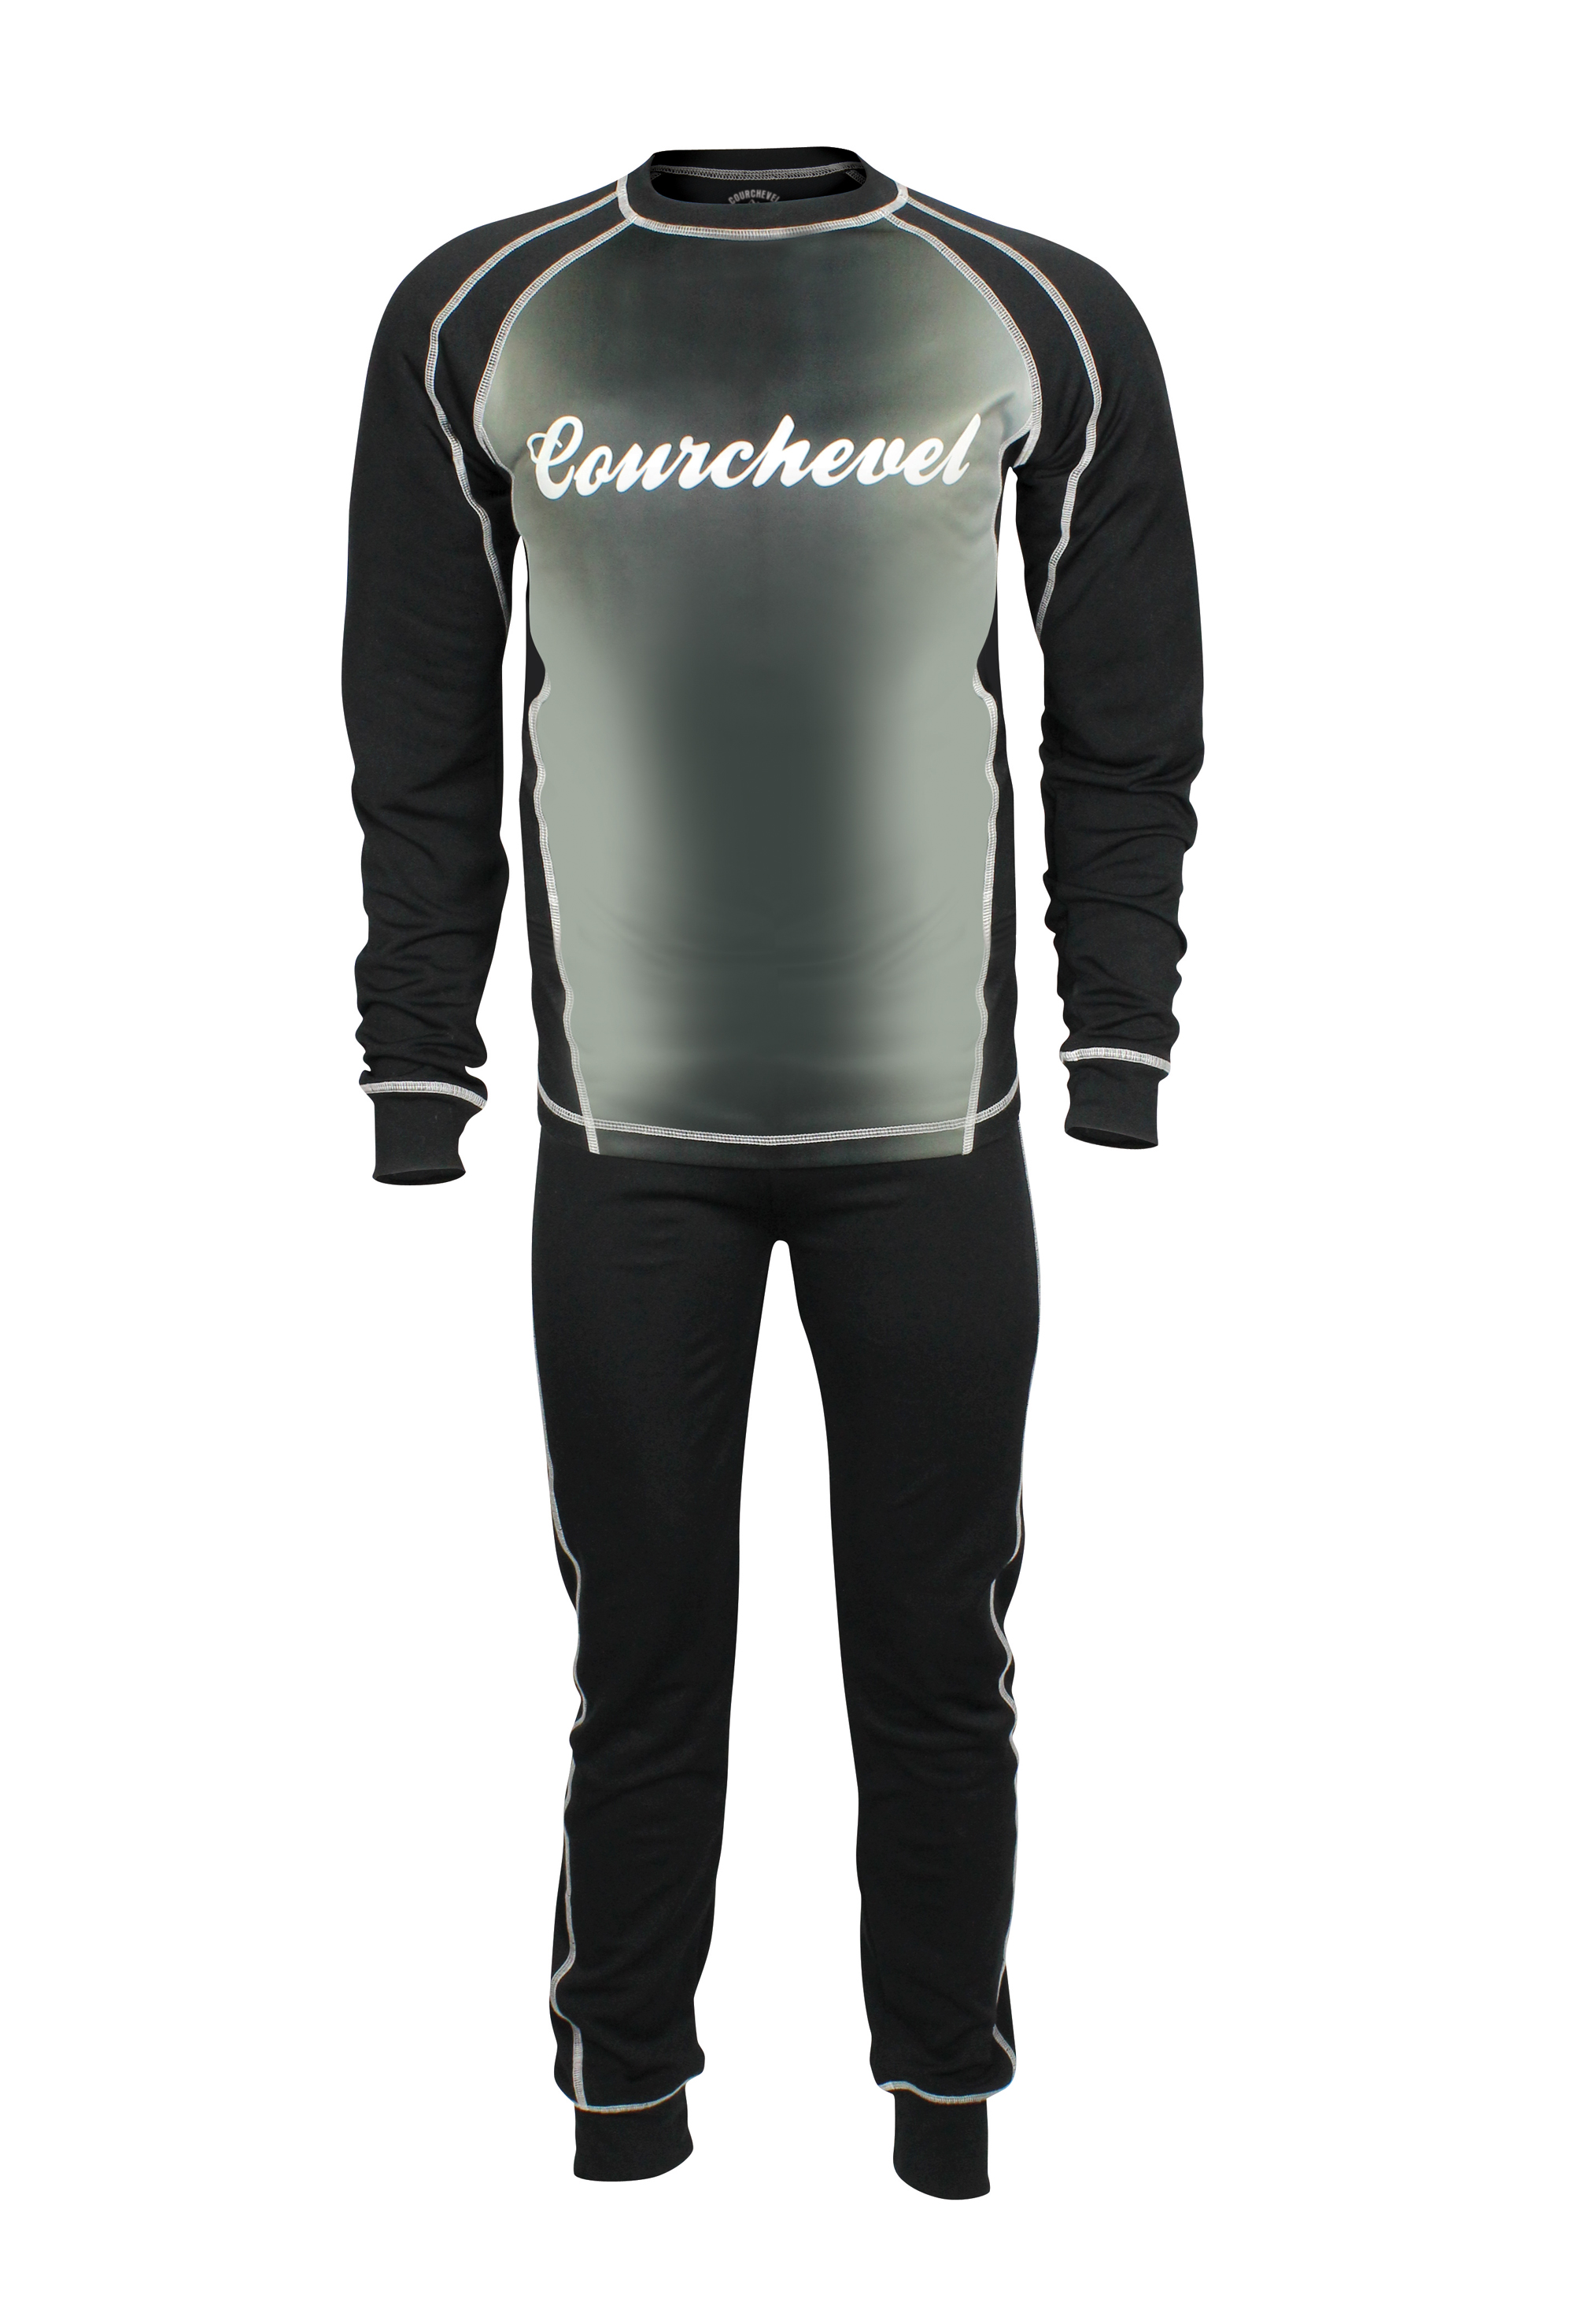 this is the pyjama done for the courchevel ski club